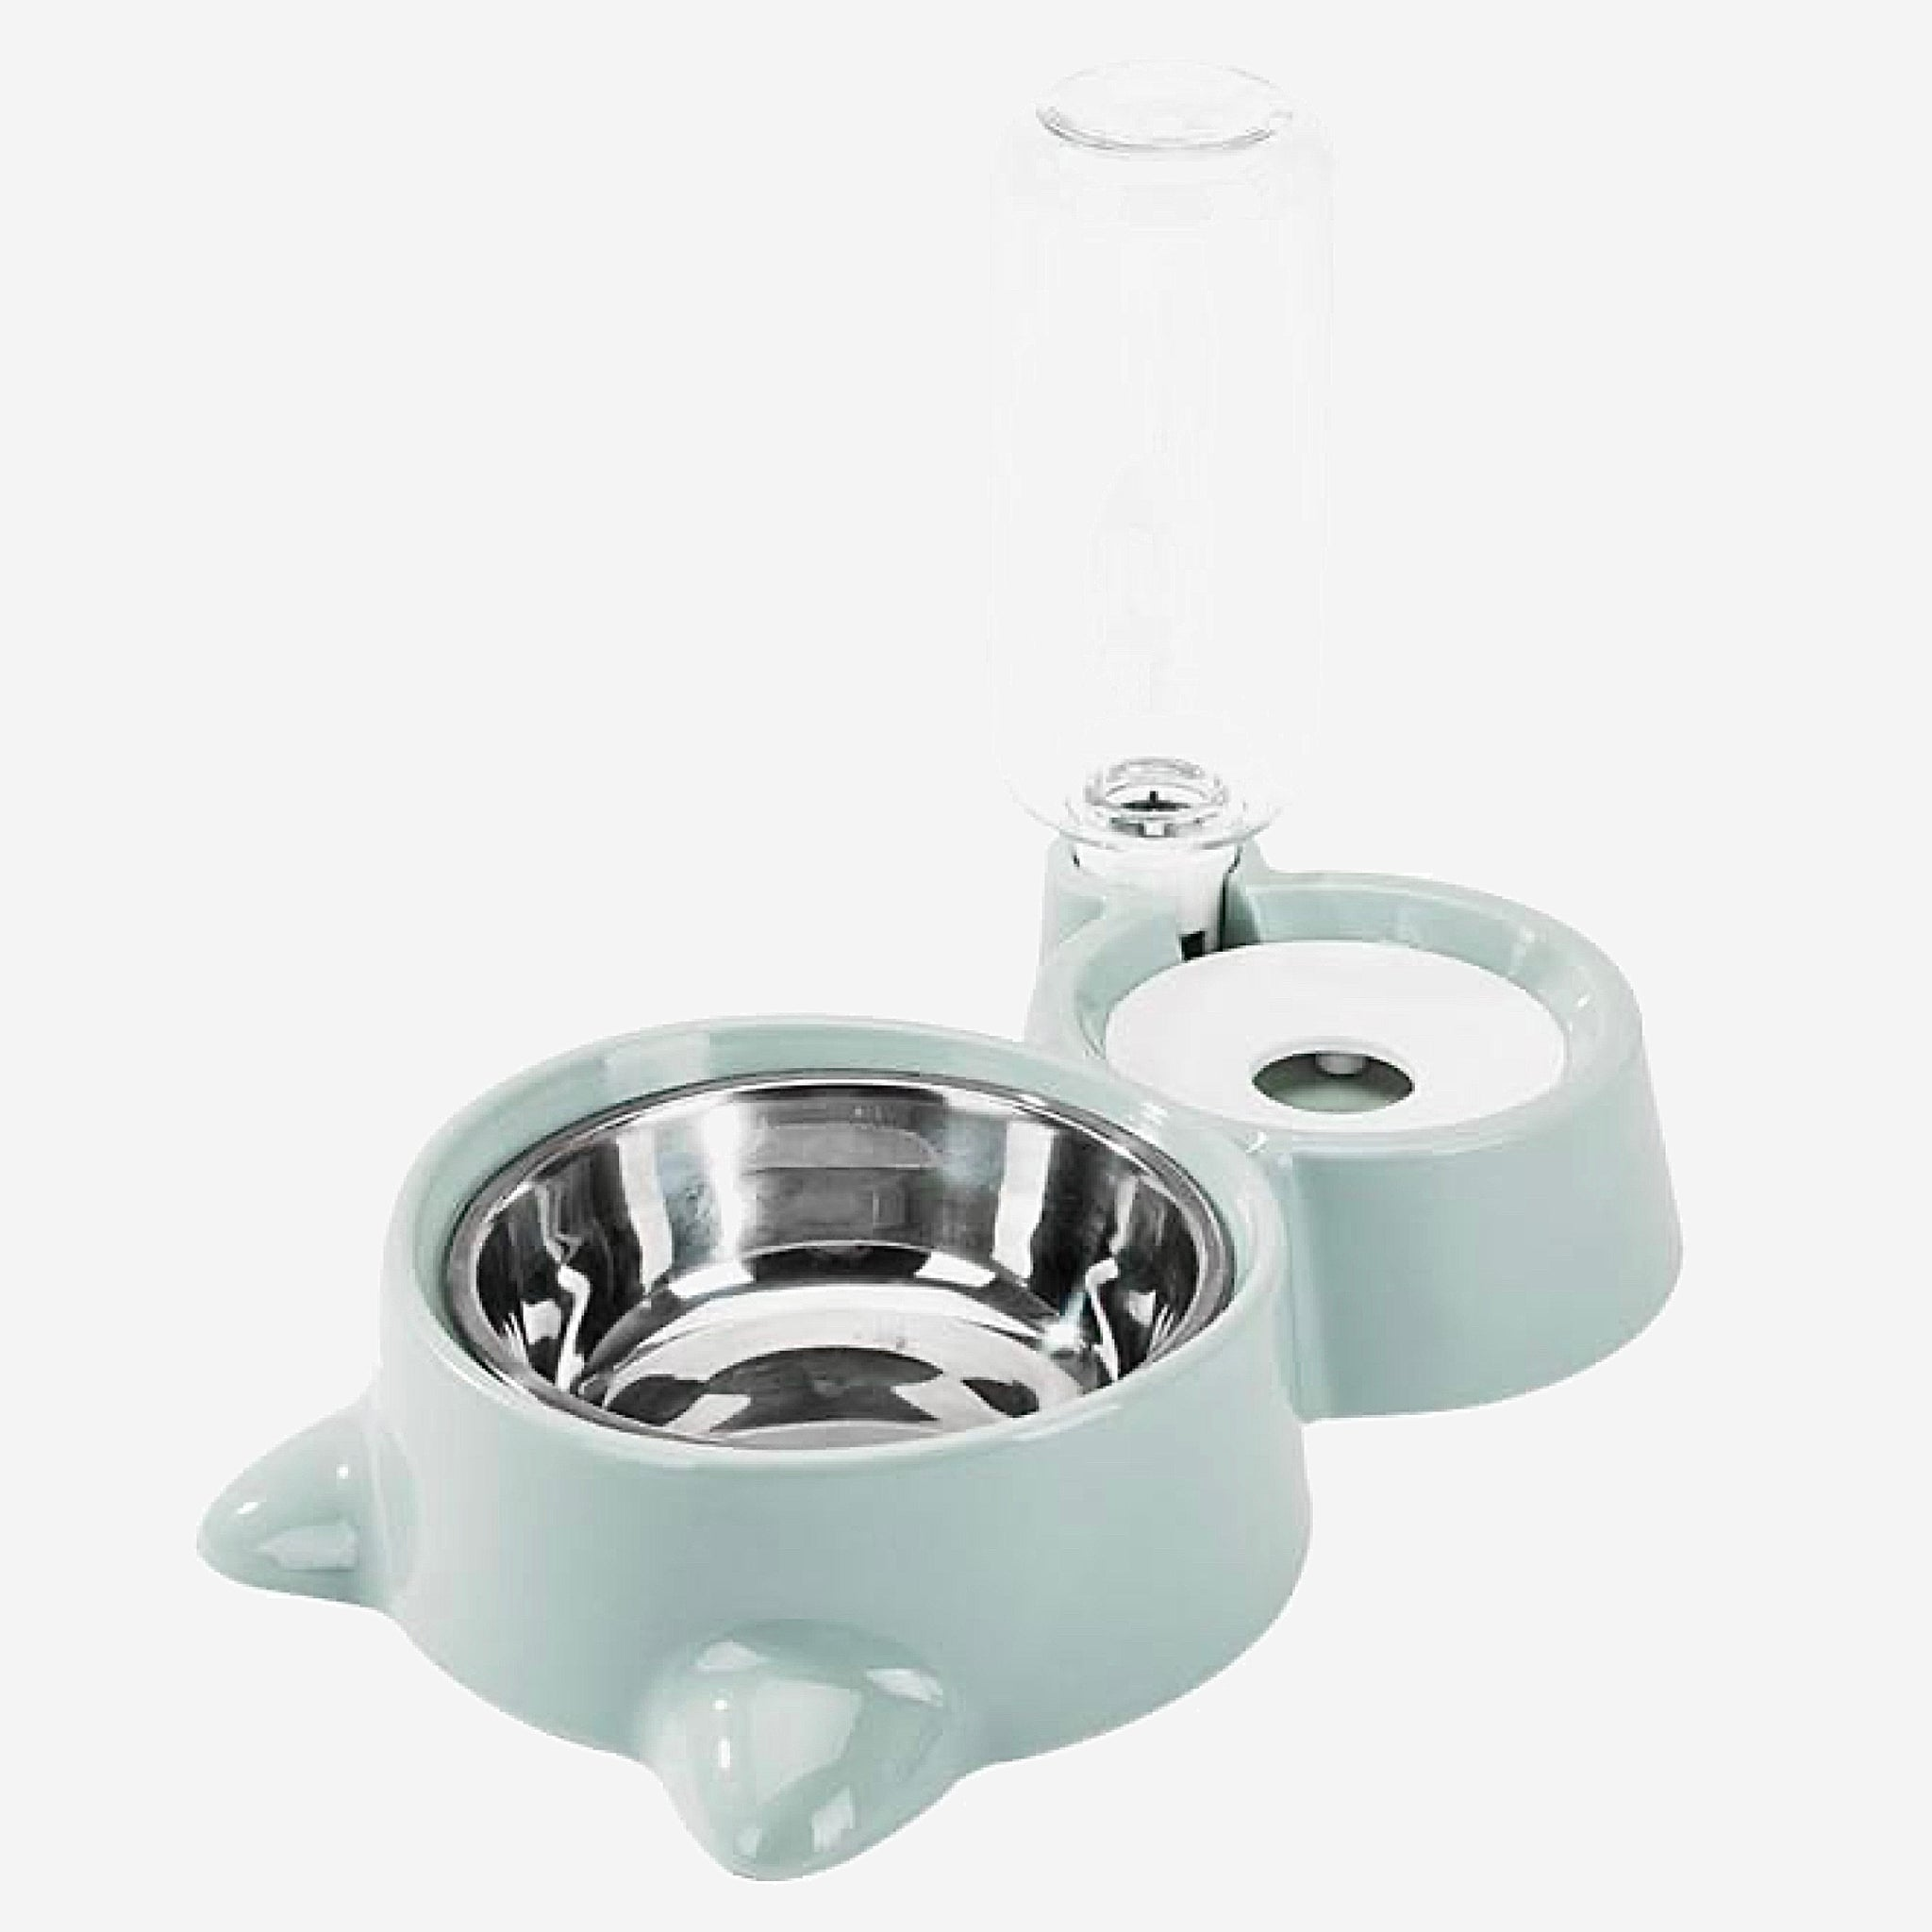 Double Pet Bowls Cat and Dog Food Water Feeder Stainless Steel Pet Drinking Dish Feeder Puppy Feeding Supplies Accessories Blue Trend